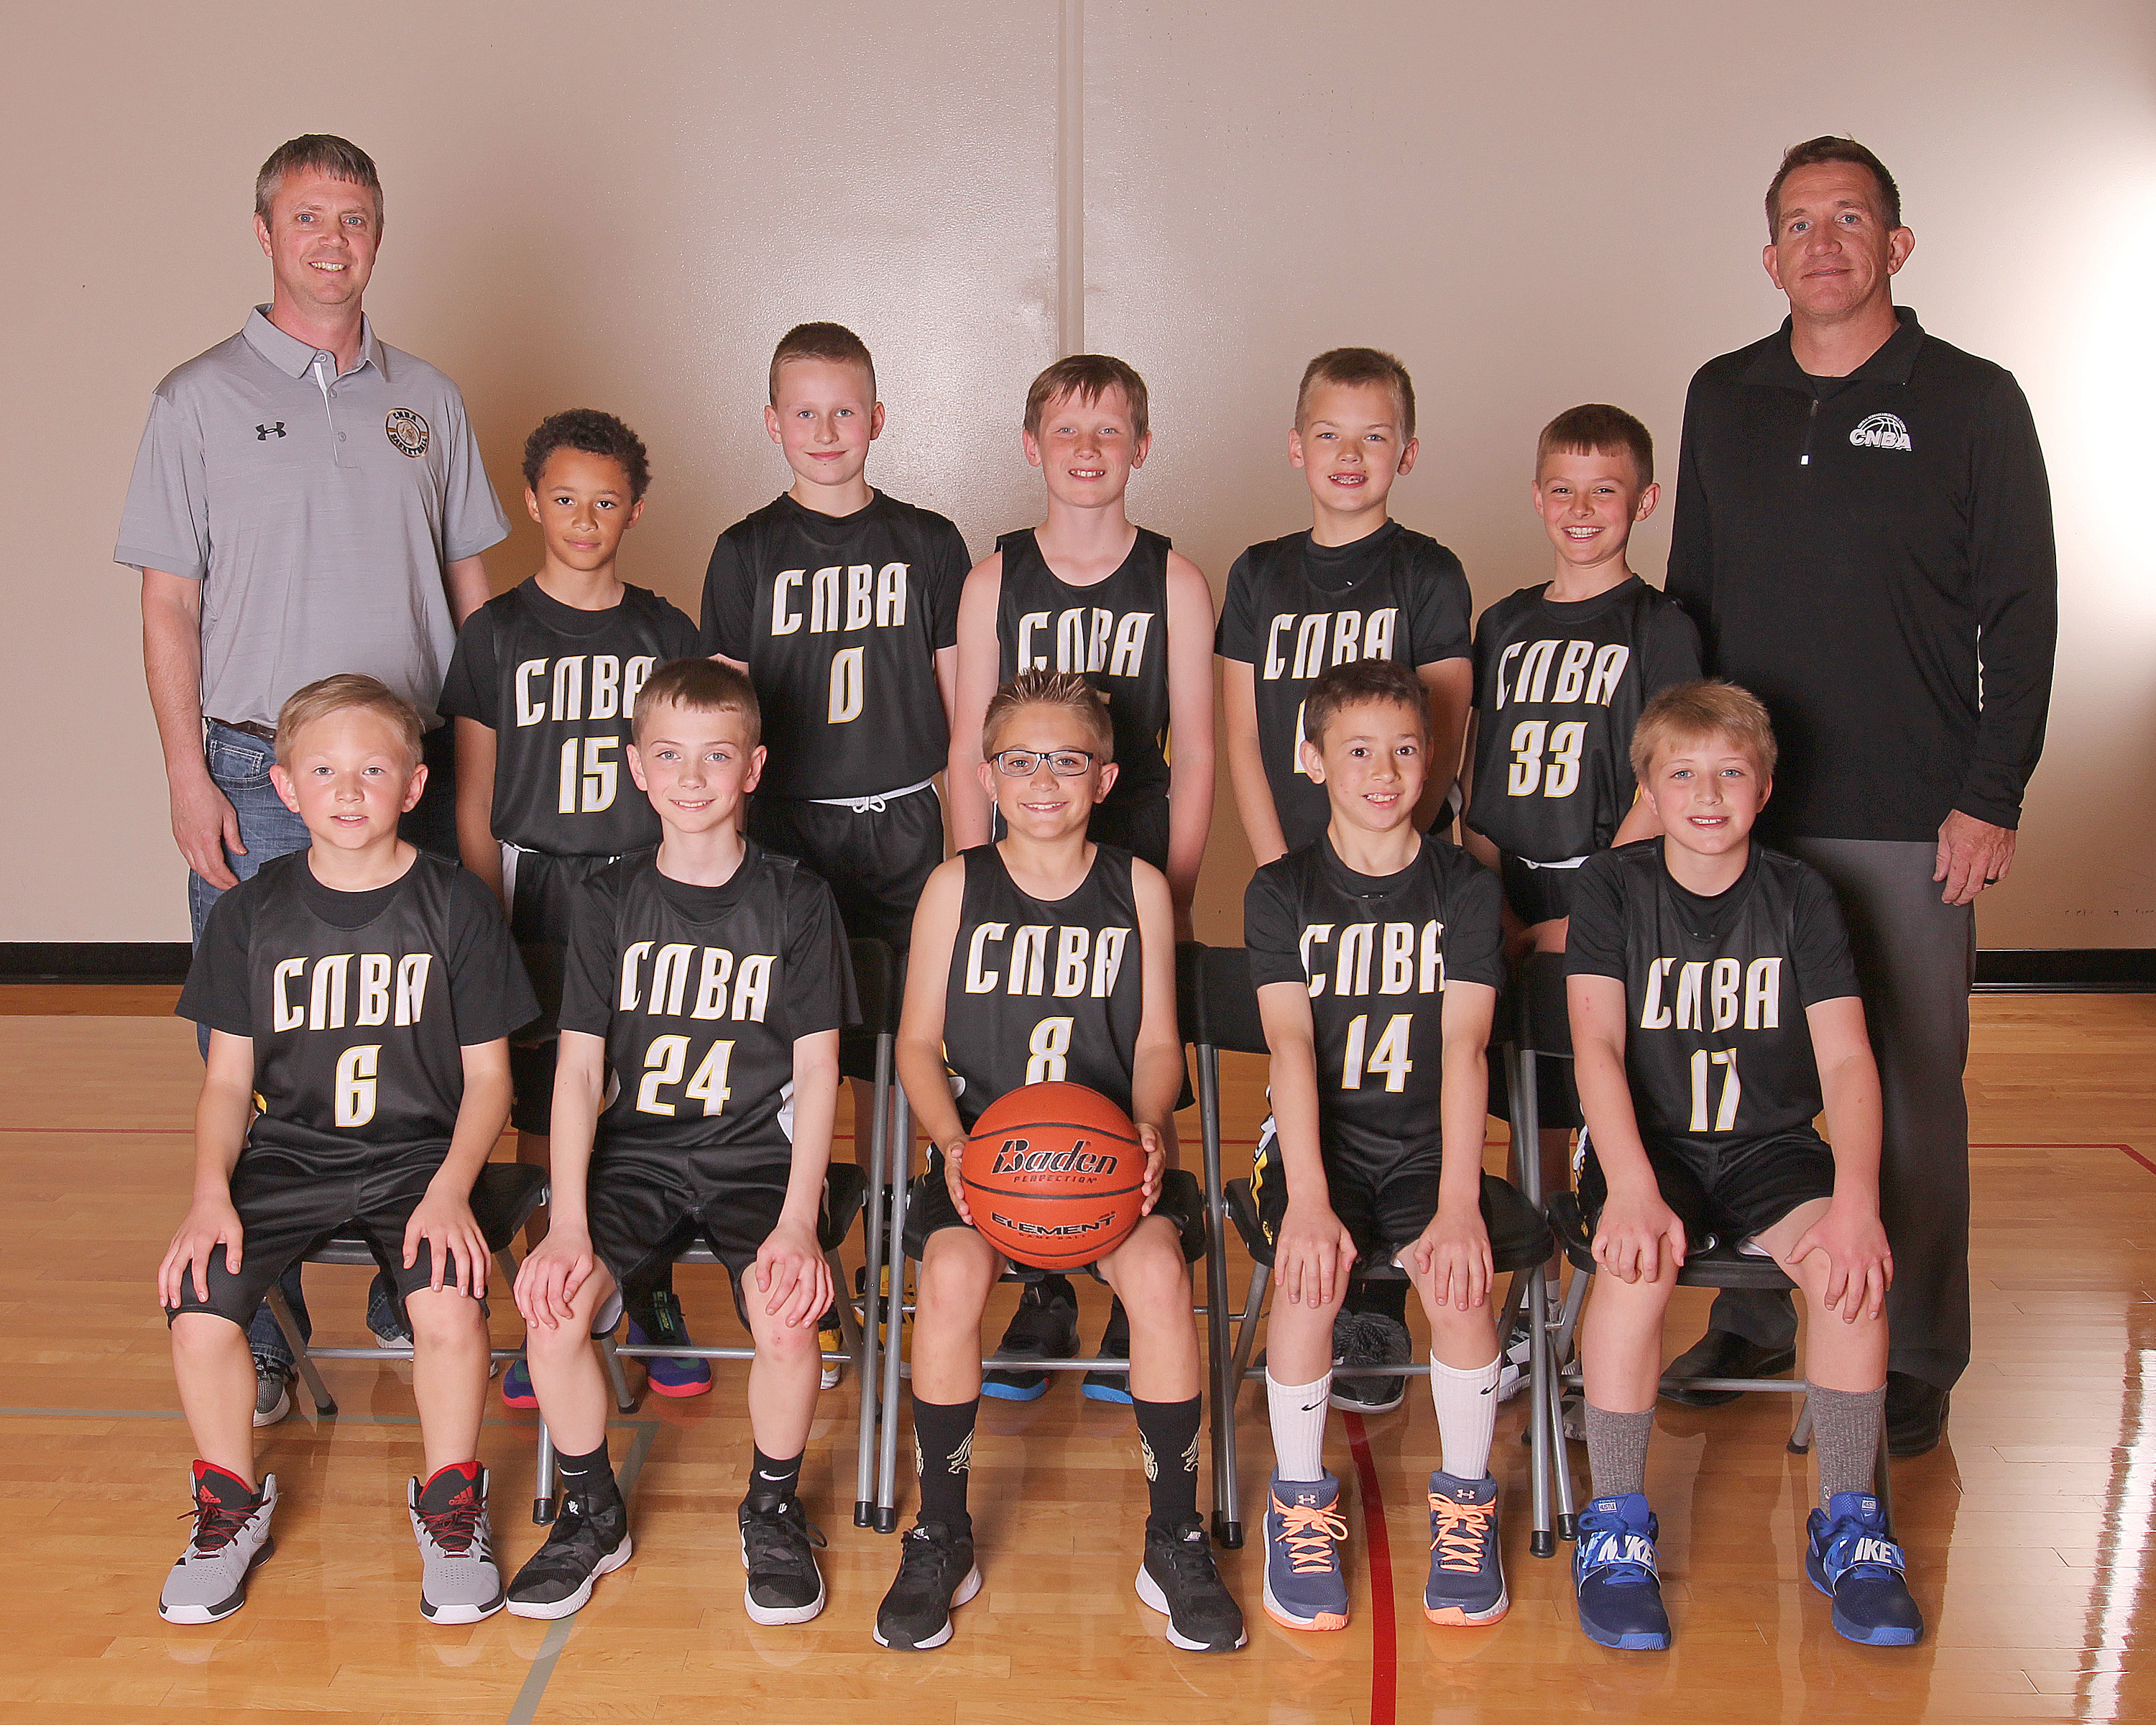 cnba56 (4th boys main)